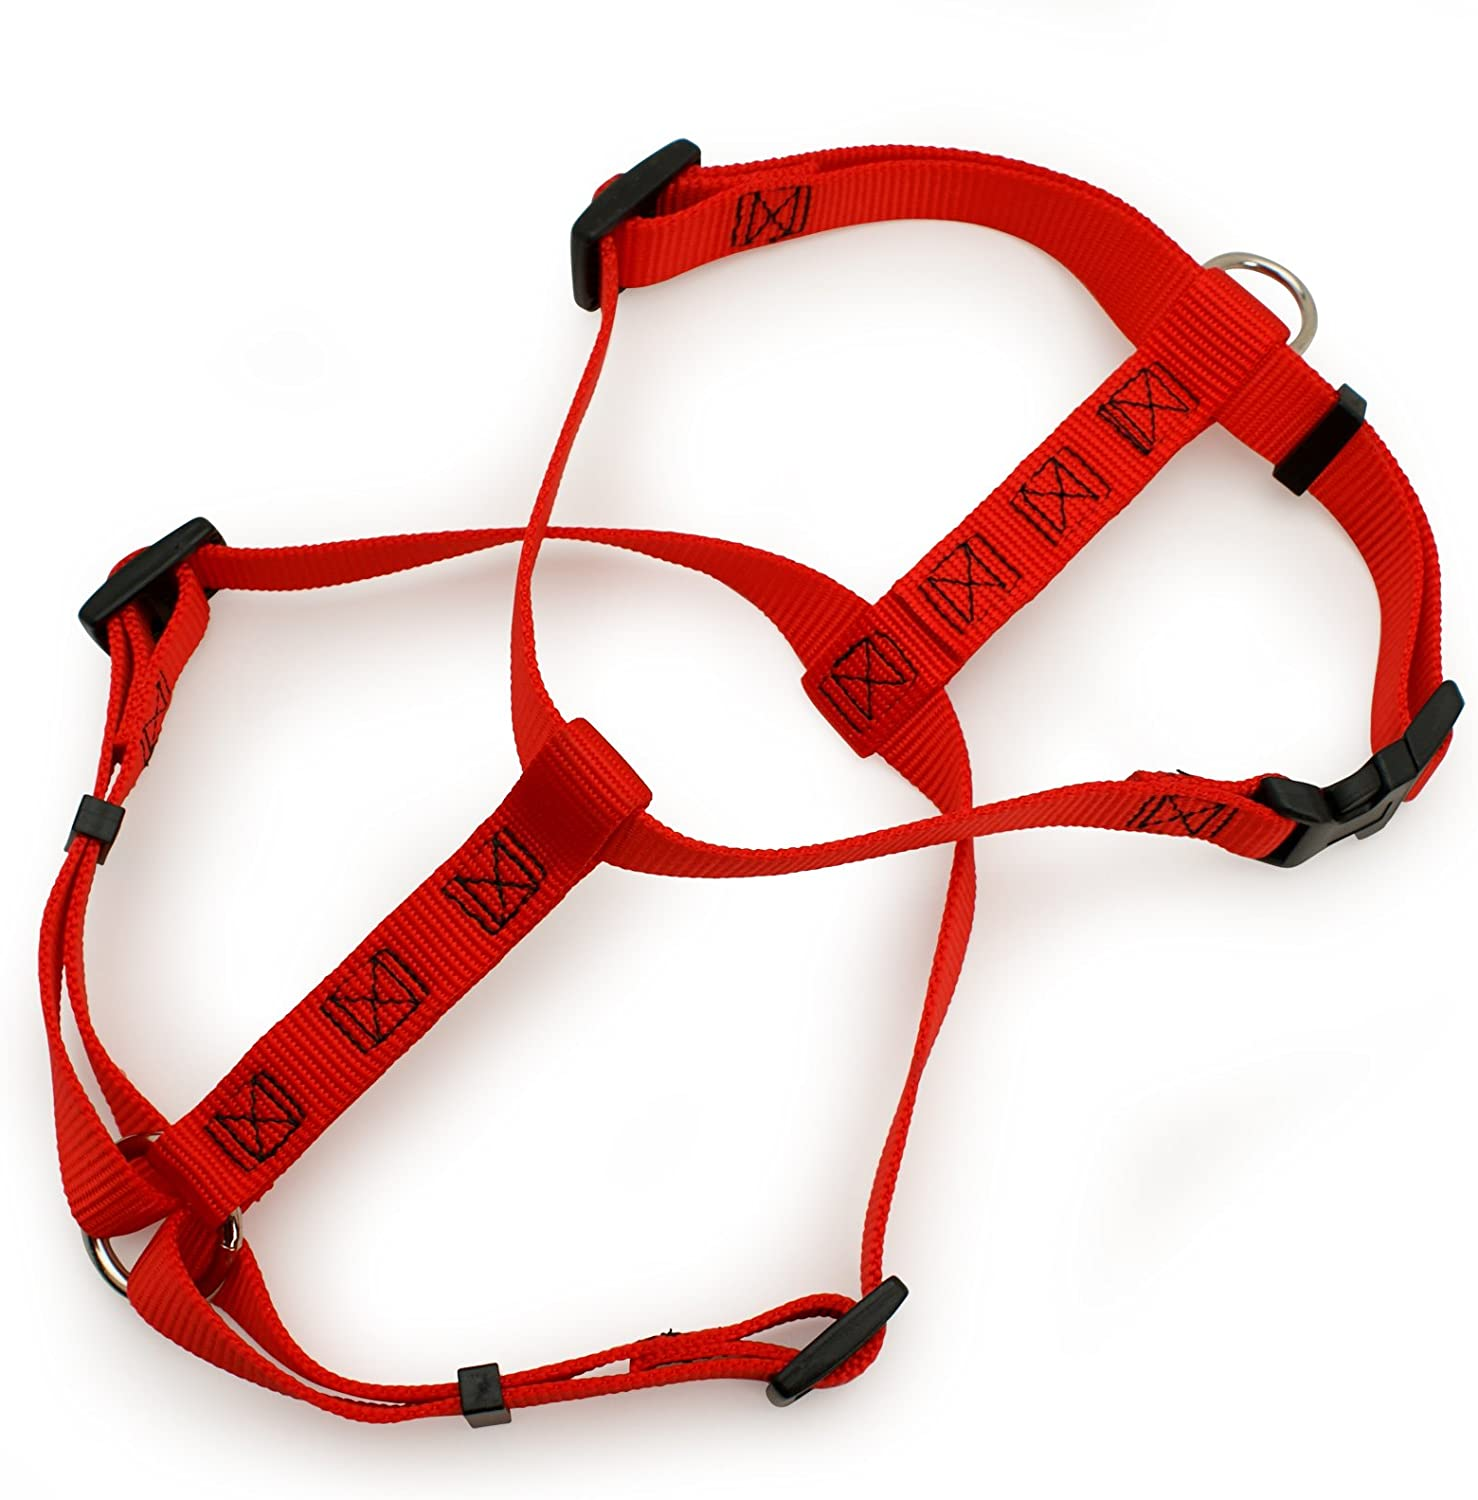 Aspen Pet Products Adjustable Nyl Harness, Red, 2836  x 1